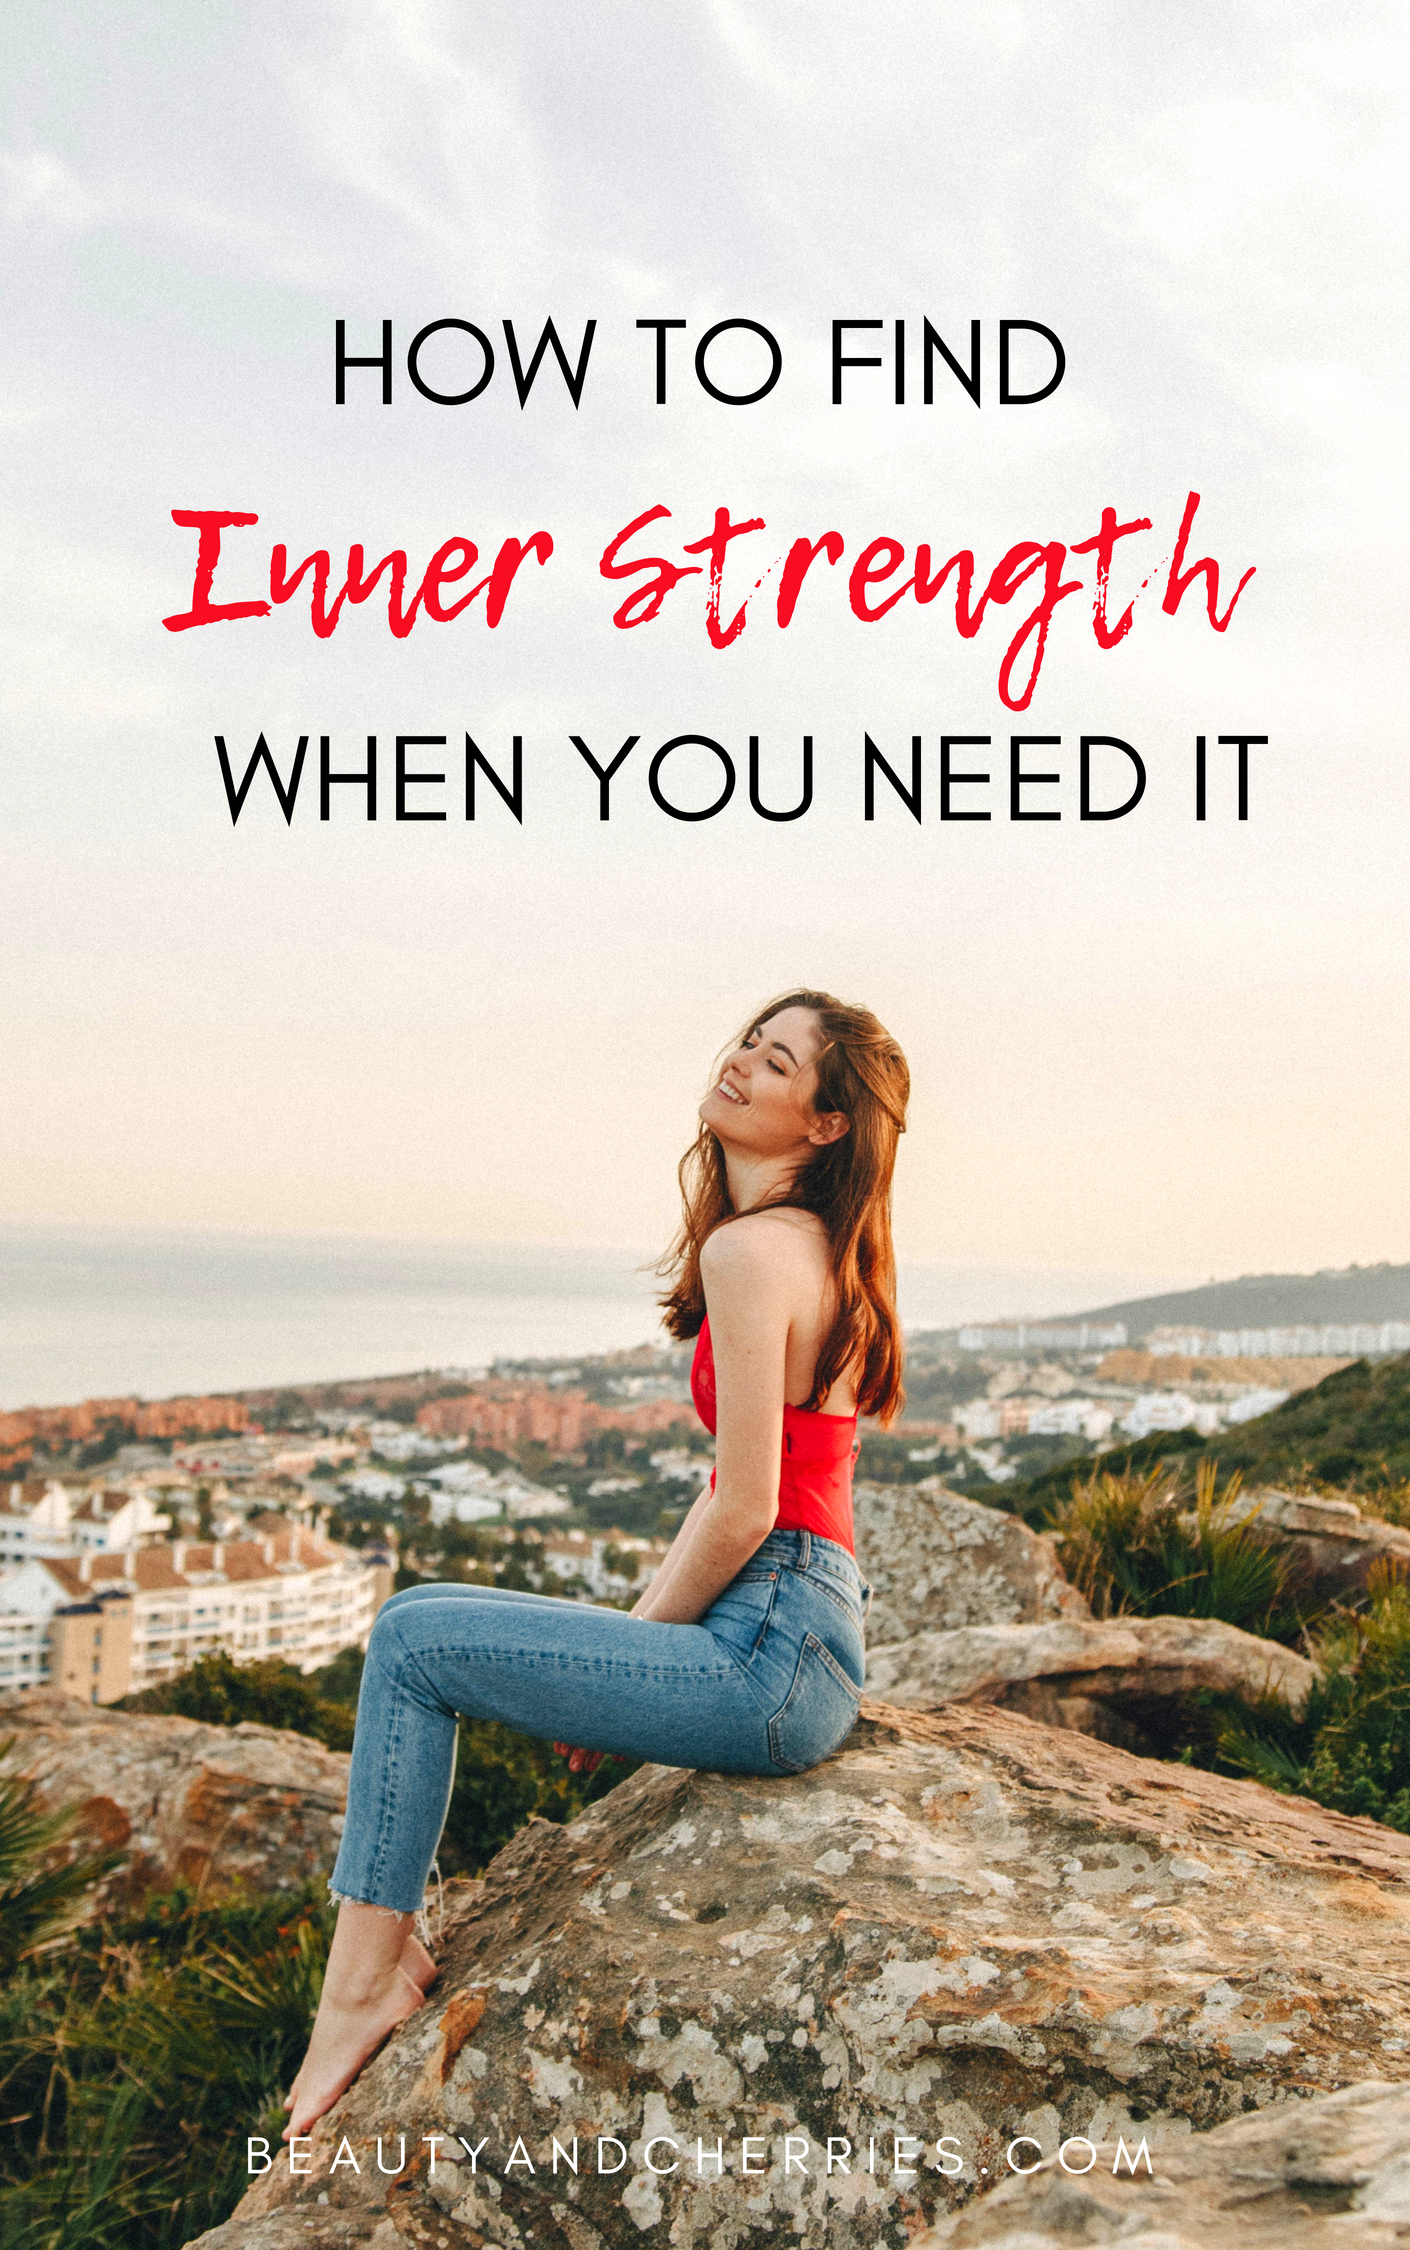 I Always Feel Tired: 3 Timeless Strategies For Finding Inner Strength